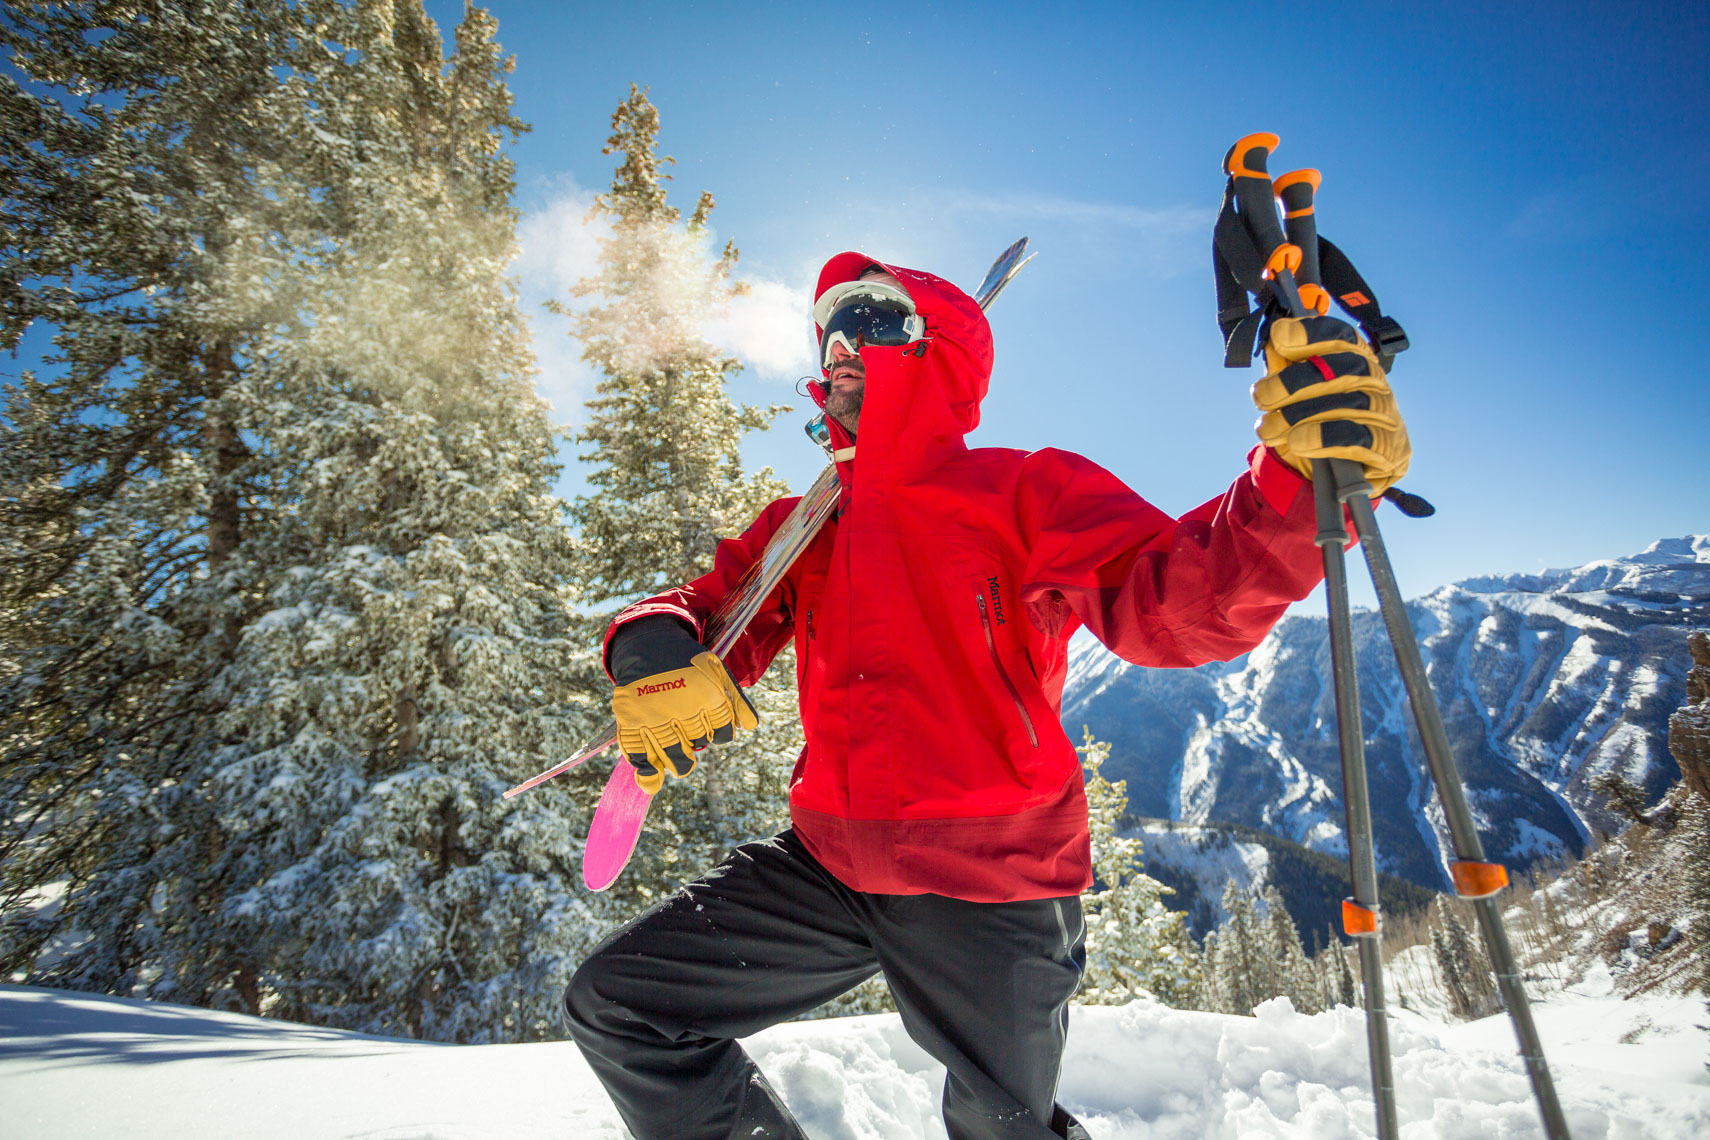 Skier in red jacket in Aspen by adventure photographer Rich Crowder